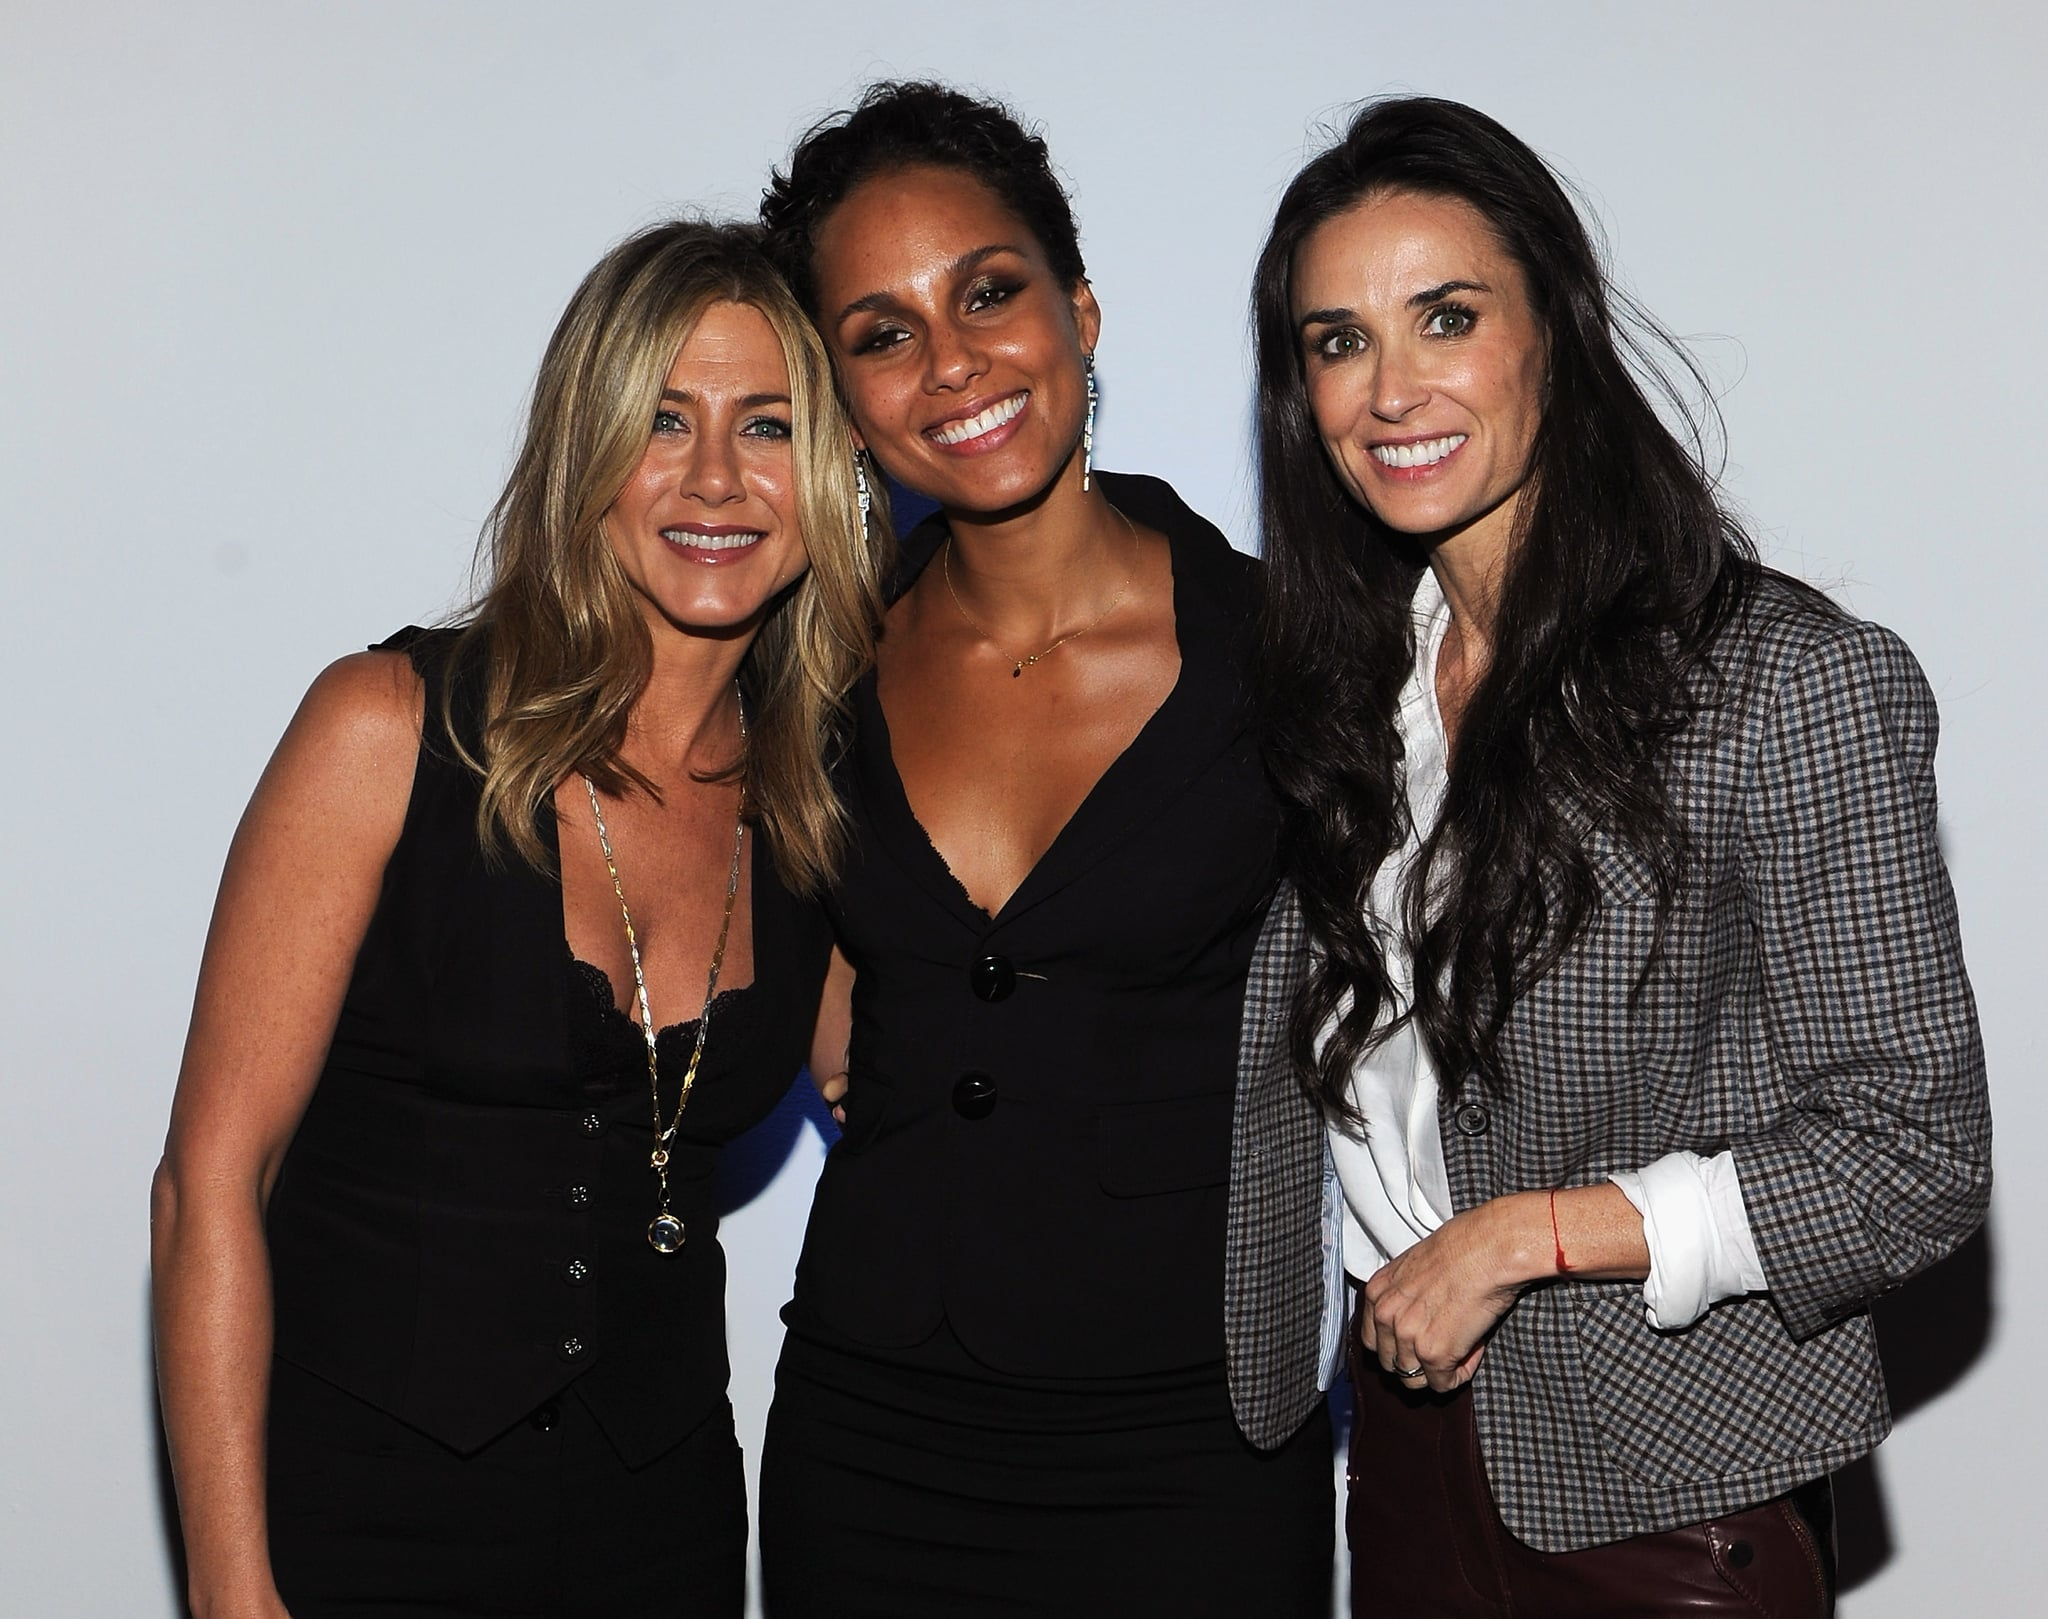 Alicia Smiles jennifer was all smiles while hanging with alicia keys and